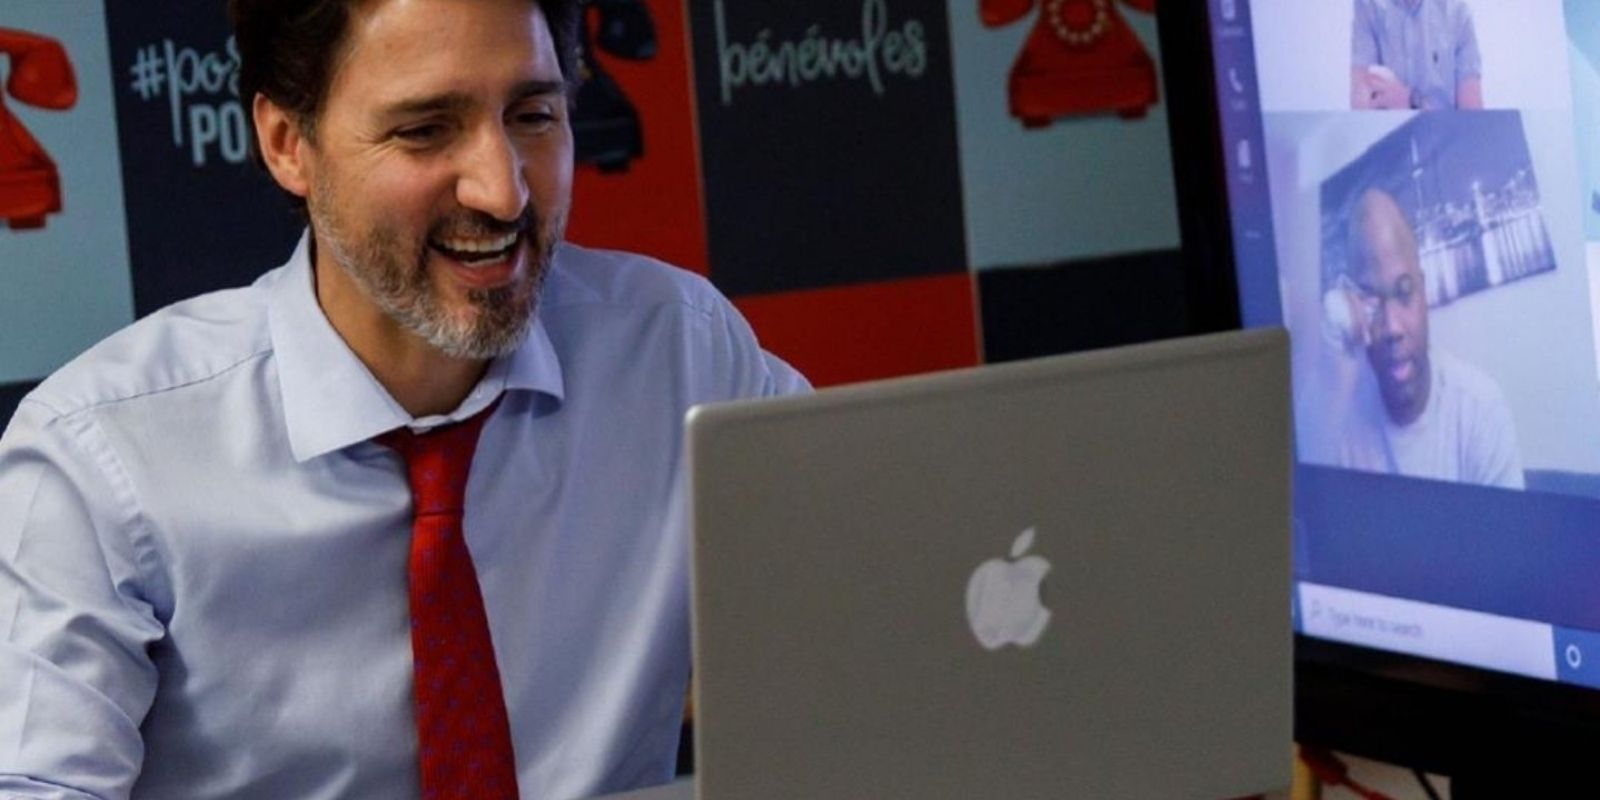 PHONY: Trudeau seen using HP laptop with Apple sticker covering logo